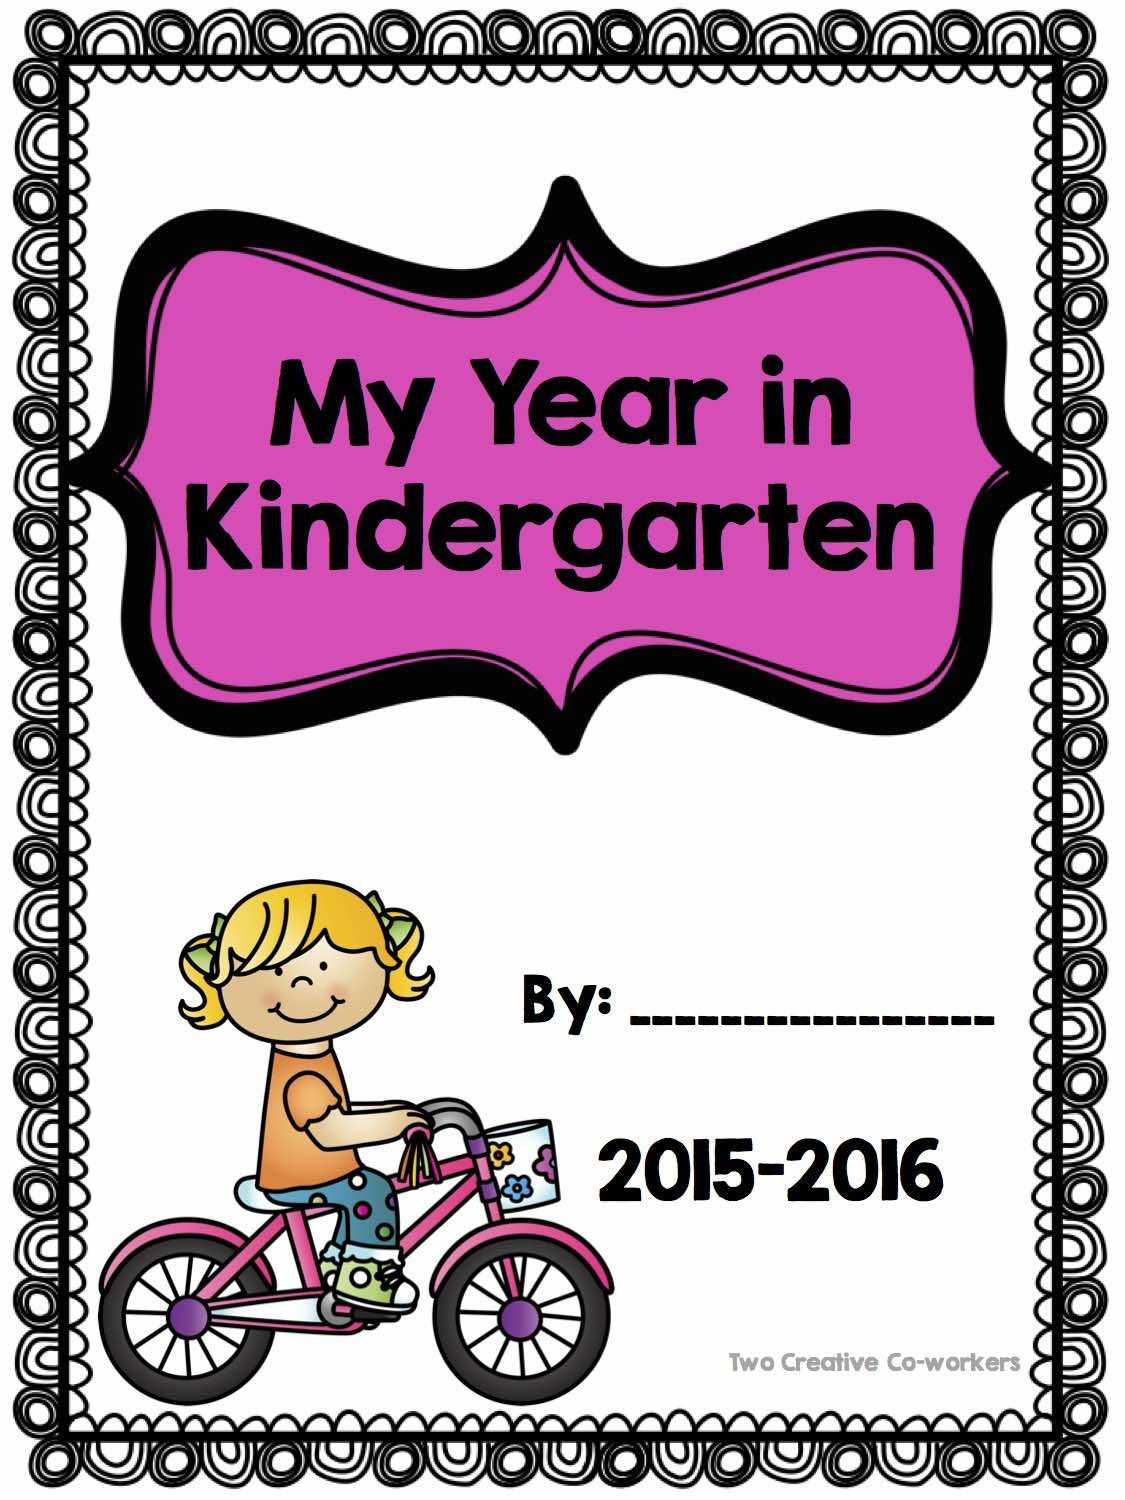 Scrapbook ideas kindergarten - This Cover Page Is Included In Our Kindergarten Memory Scrapbook Your Students Will Enjoy